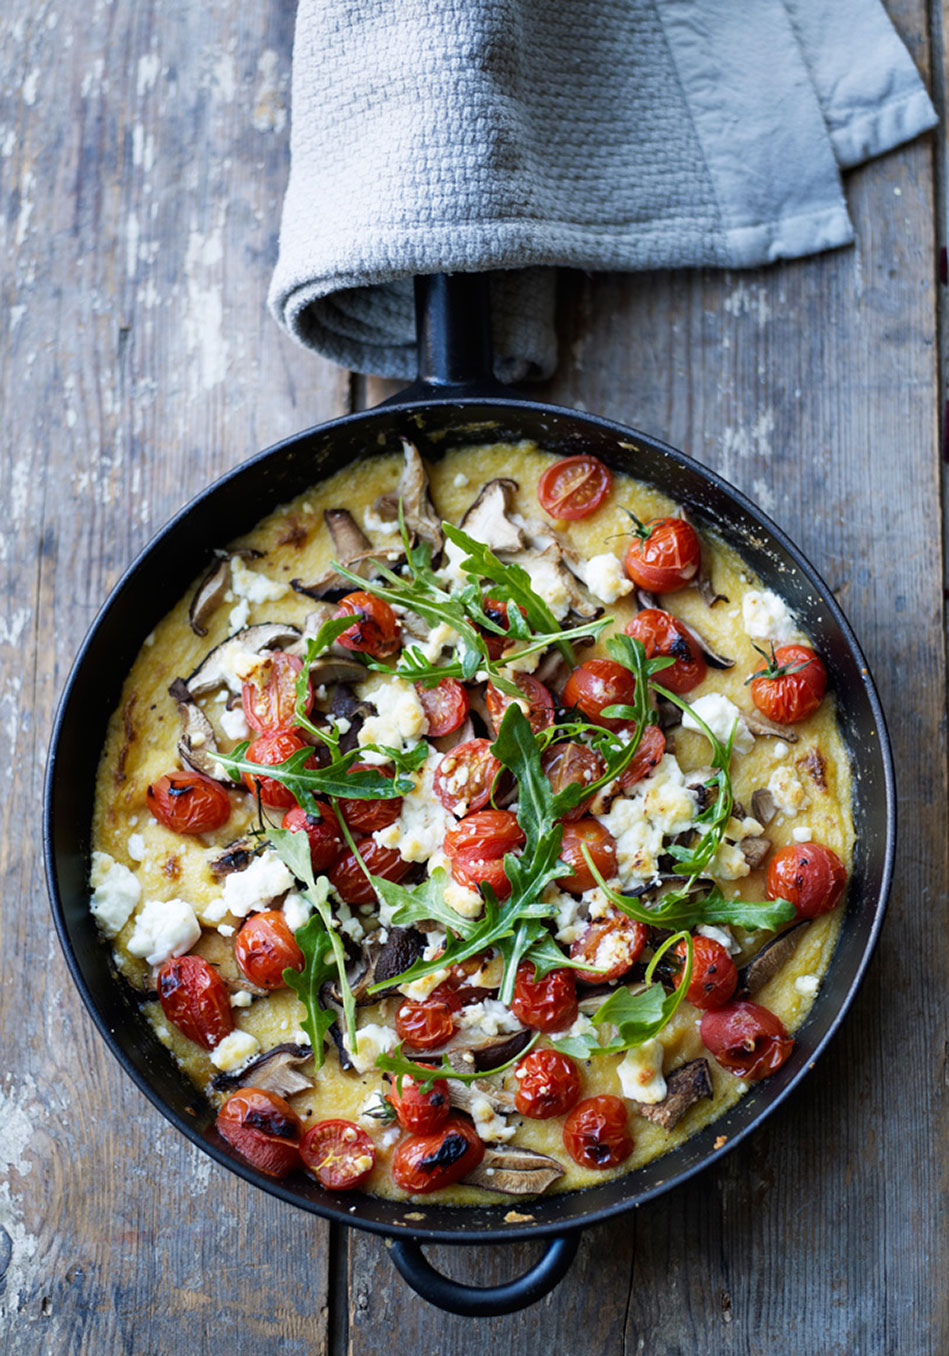 Polenta Bake with Tomato, Feta and Mushrooms